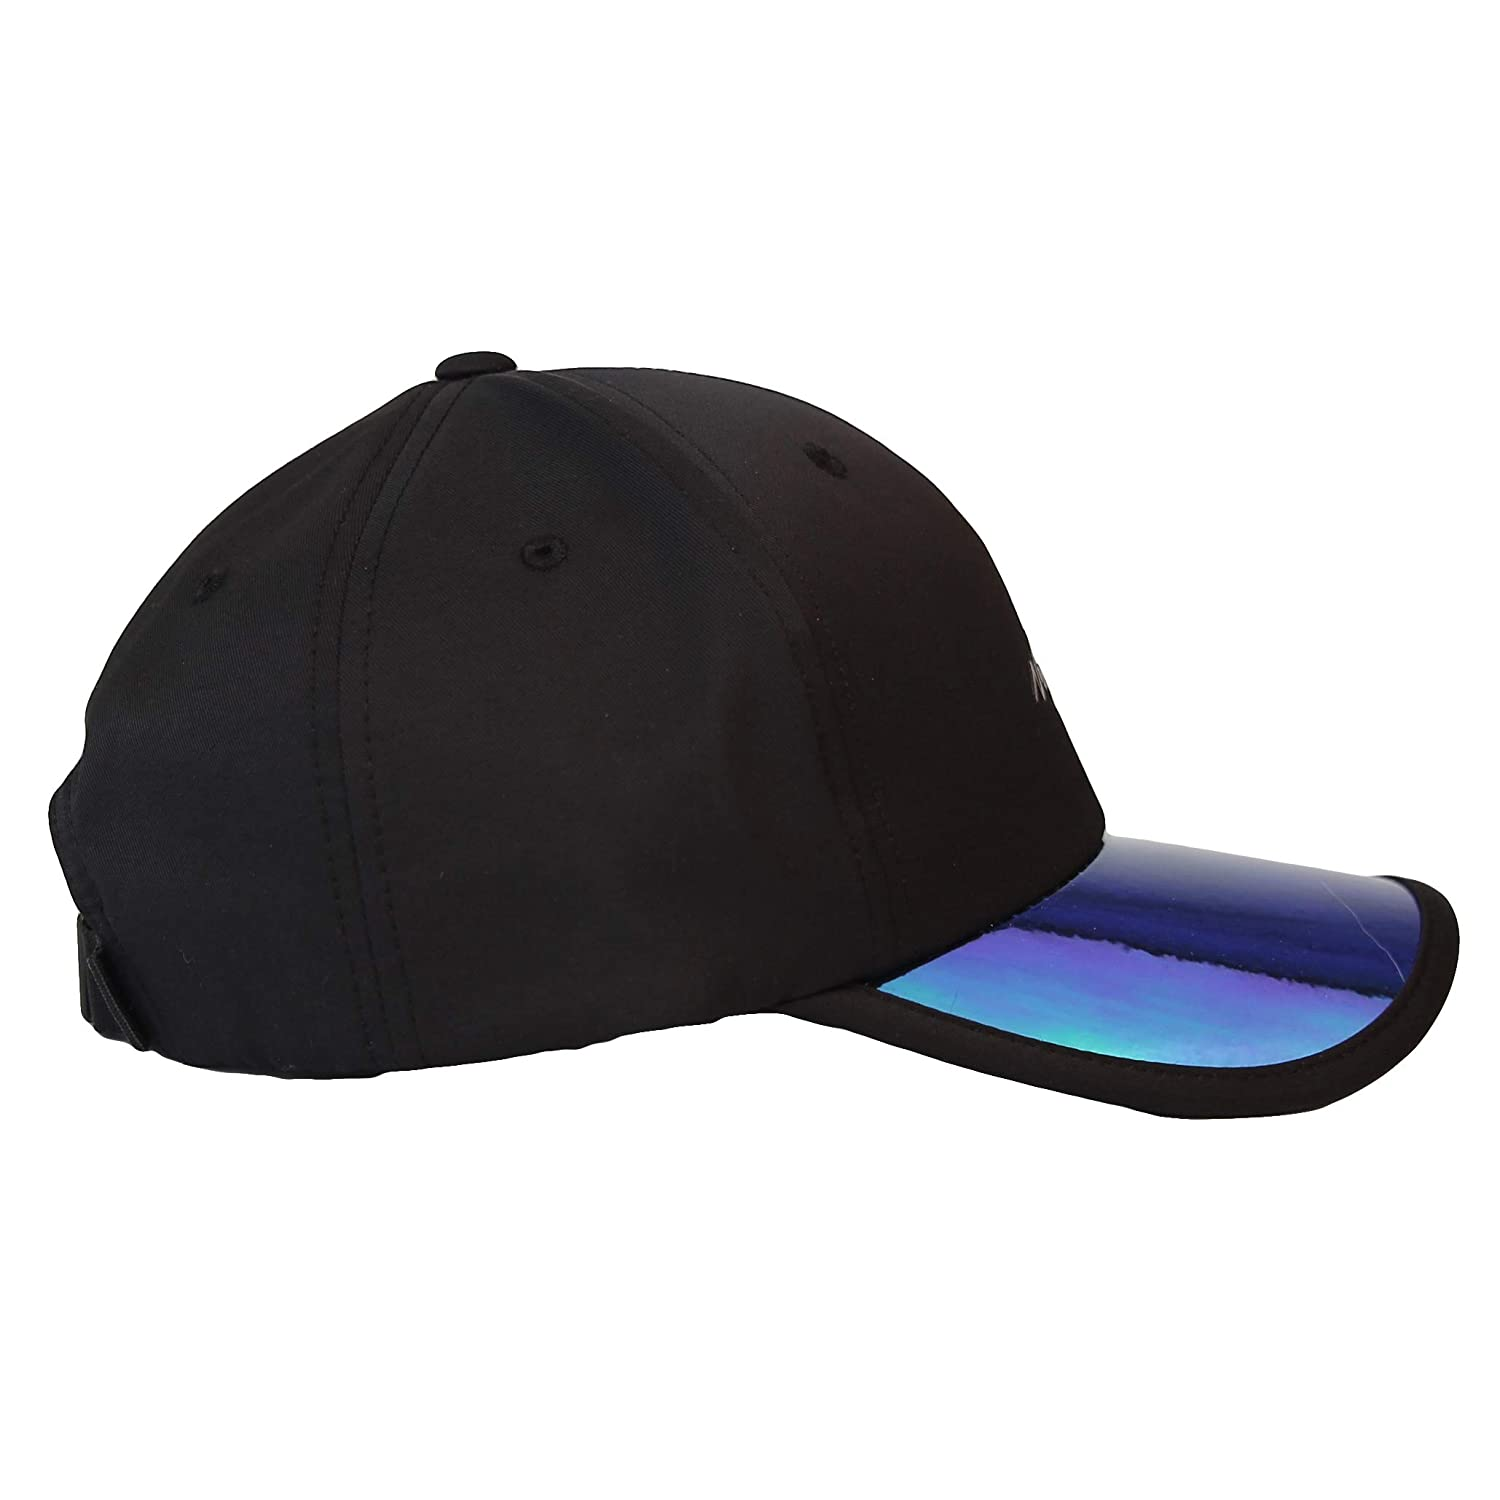 WITHMOONS Baseball Cap Glossy Shiny Brim Newyork Rubber Patch Hat CR11219